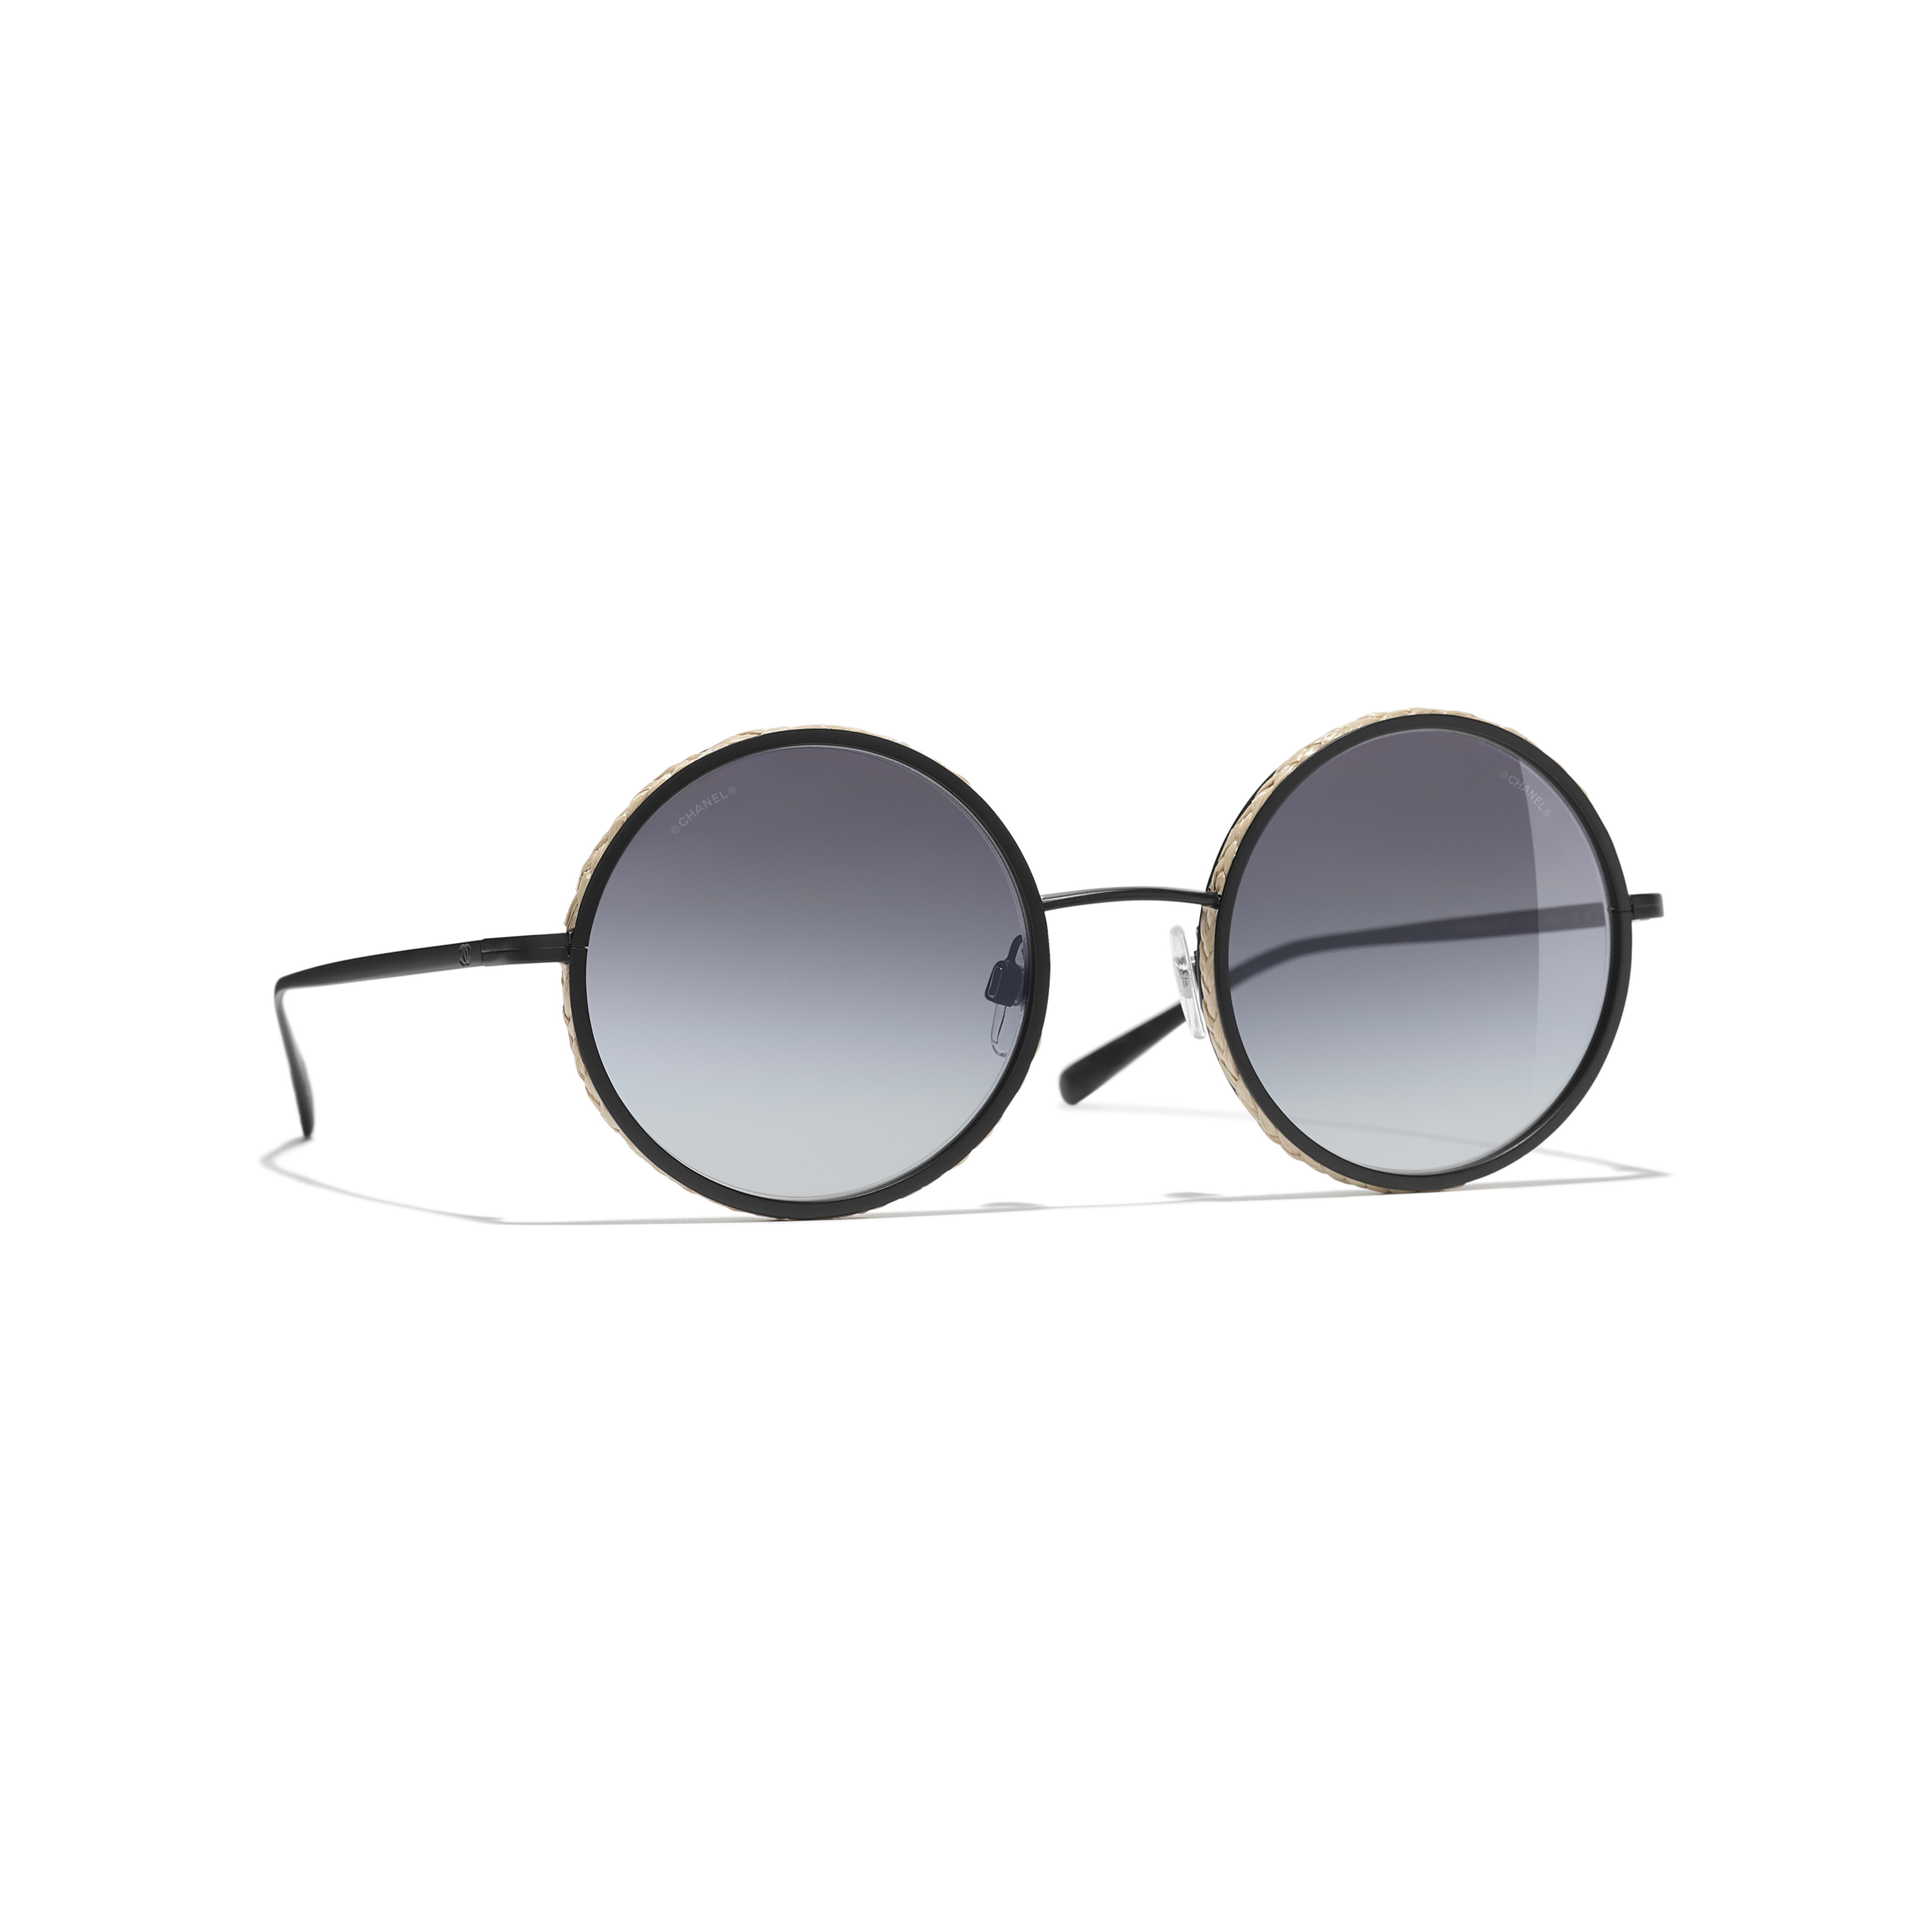 Round Sunglasses - Black - Metal & Rope - CHANEL - Default view - see standard sized version